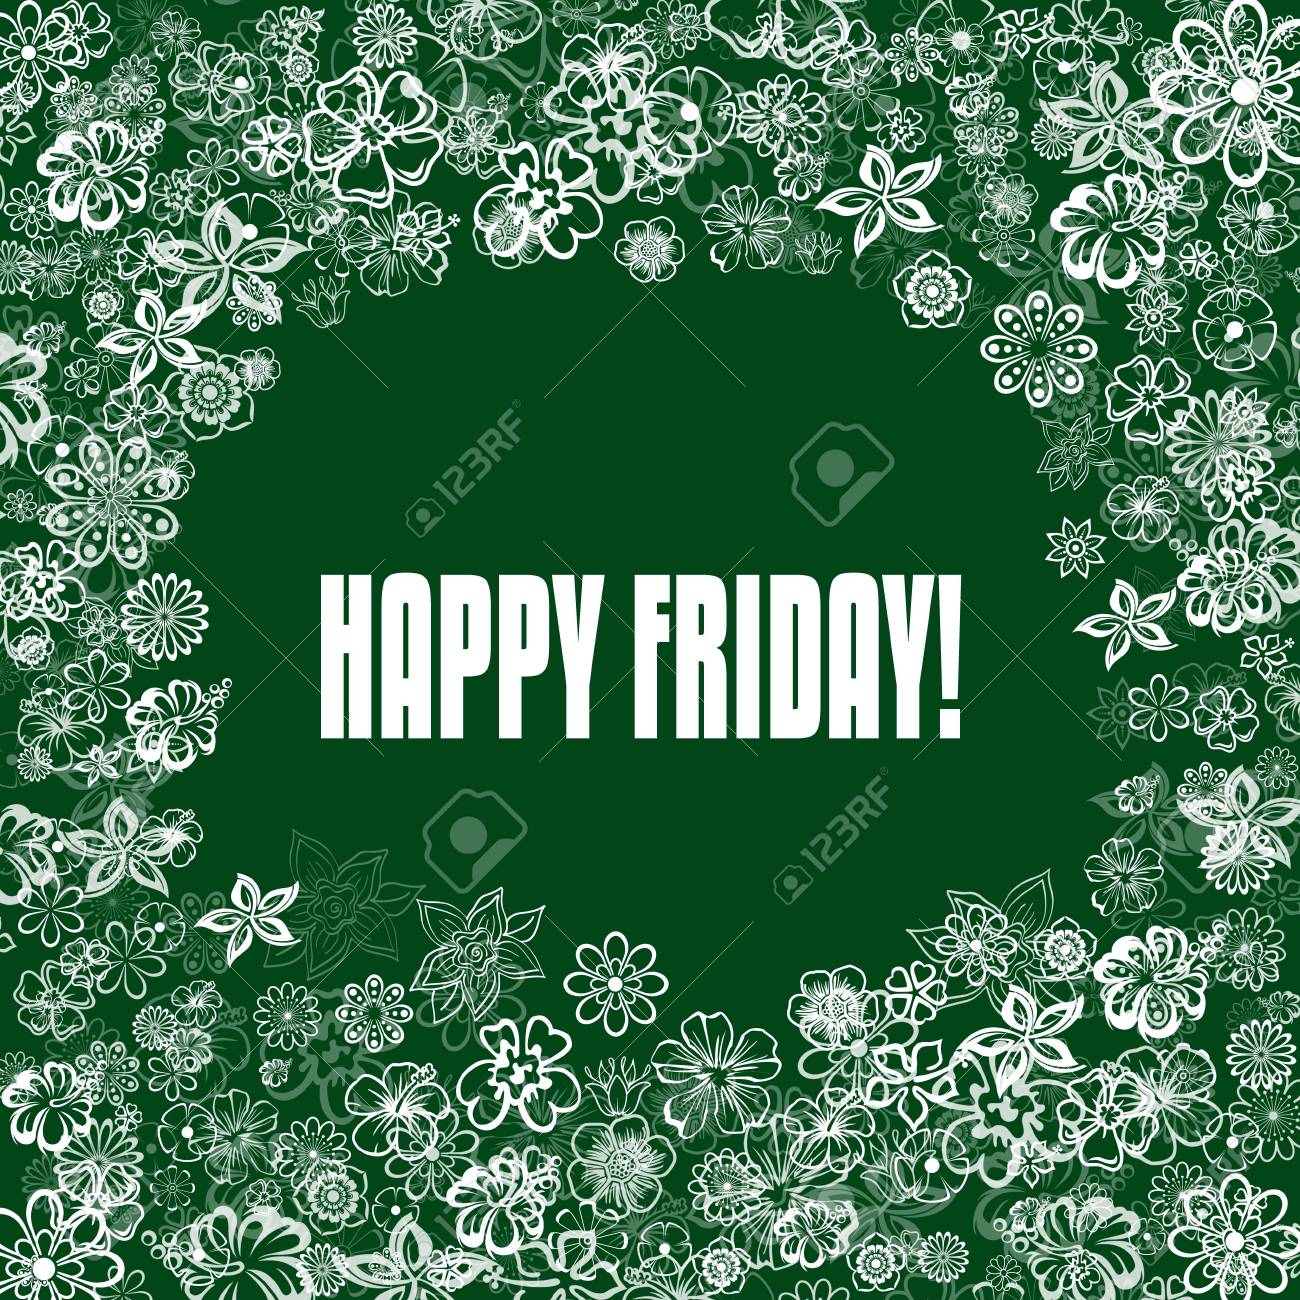 Happy Friday On Green Banner With Flowers Illustration Image